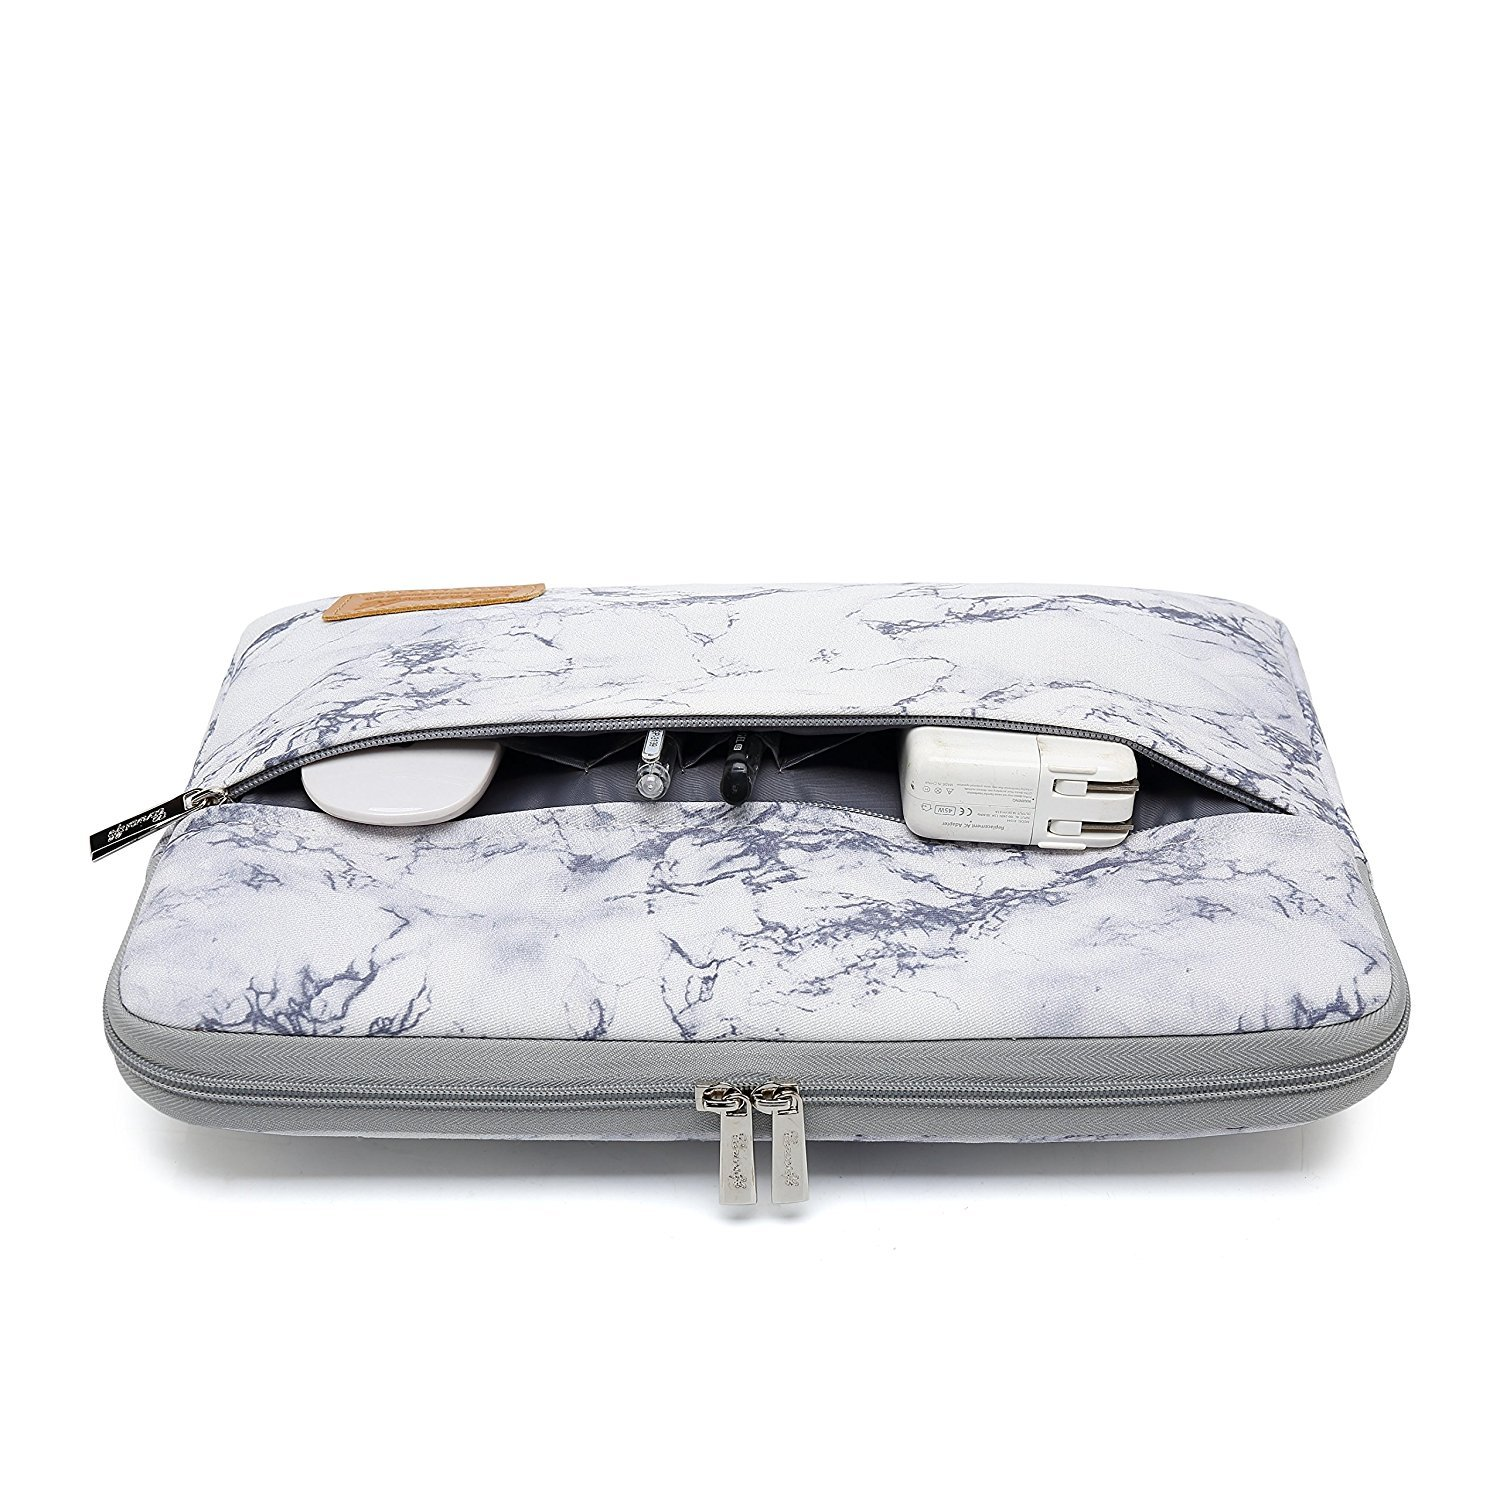 Canvaslife Marble Pattern 360 Degree Protective 14 inch Waterproof Laptop Sleeve case Bag with Pocket for 14 inch 14.0 inch Laptop by canvaslife (Image #3)